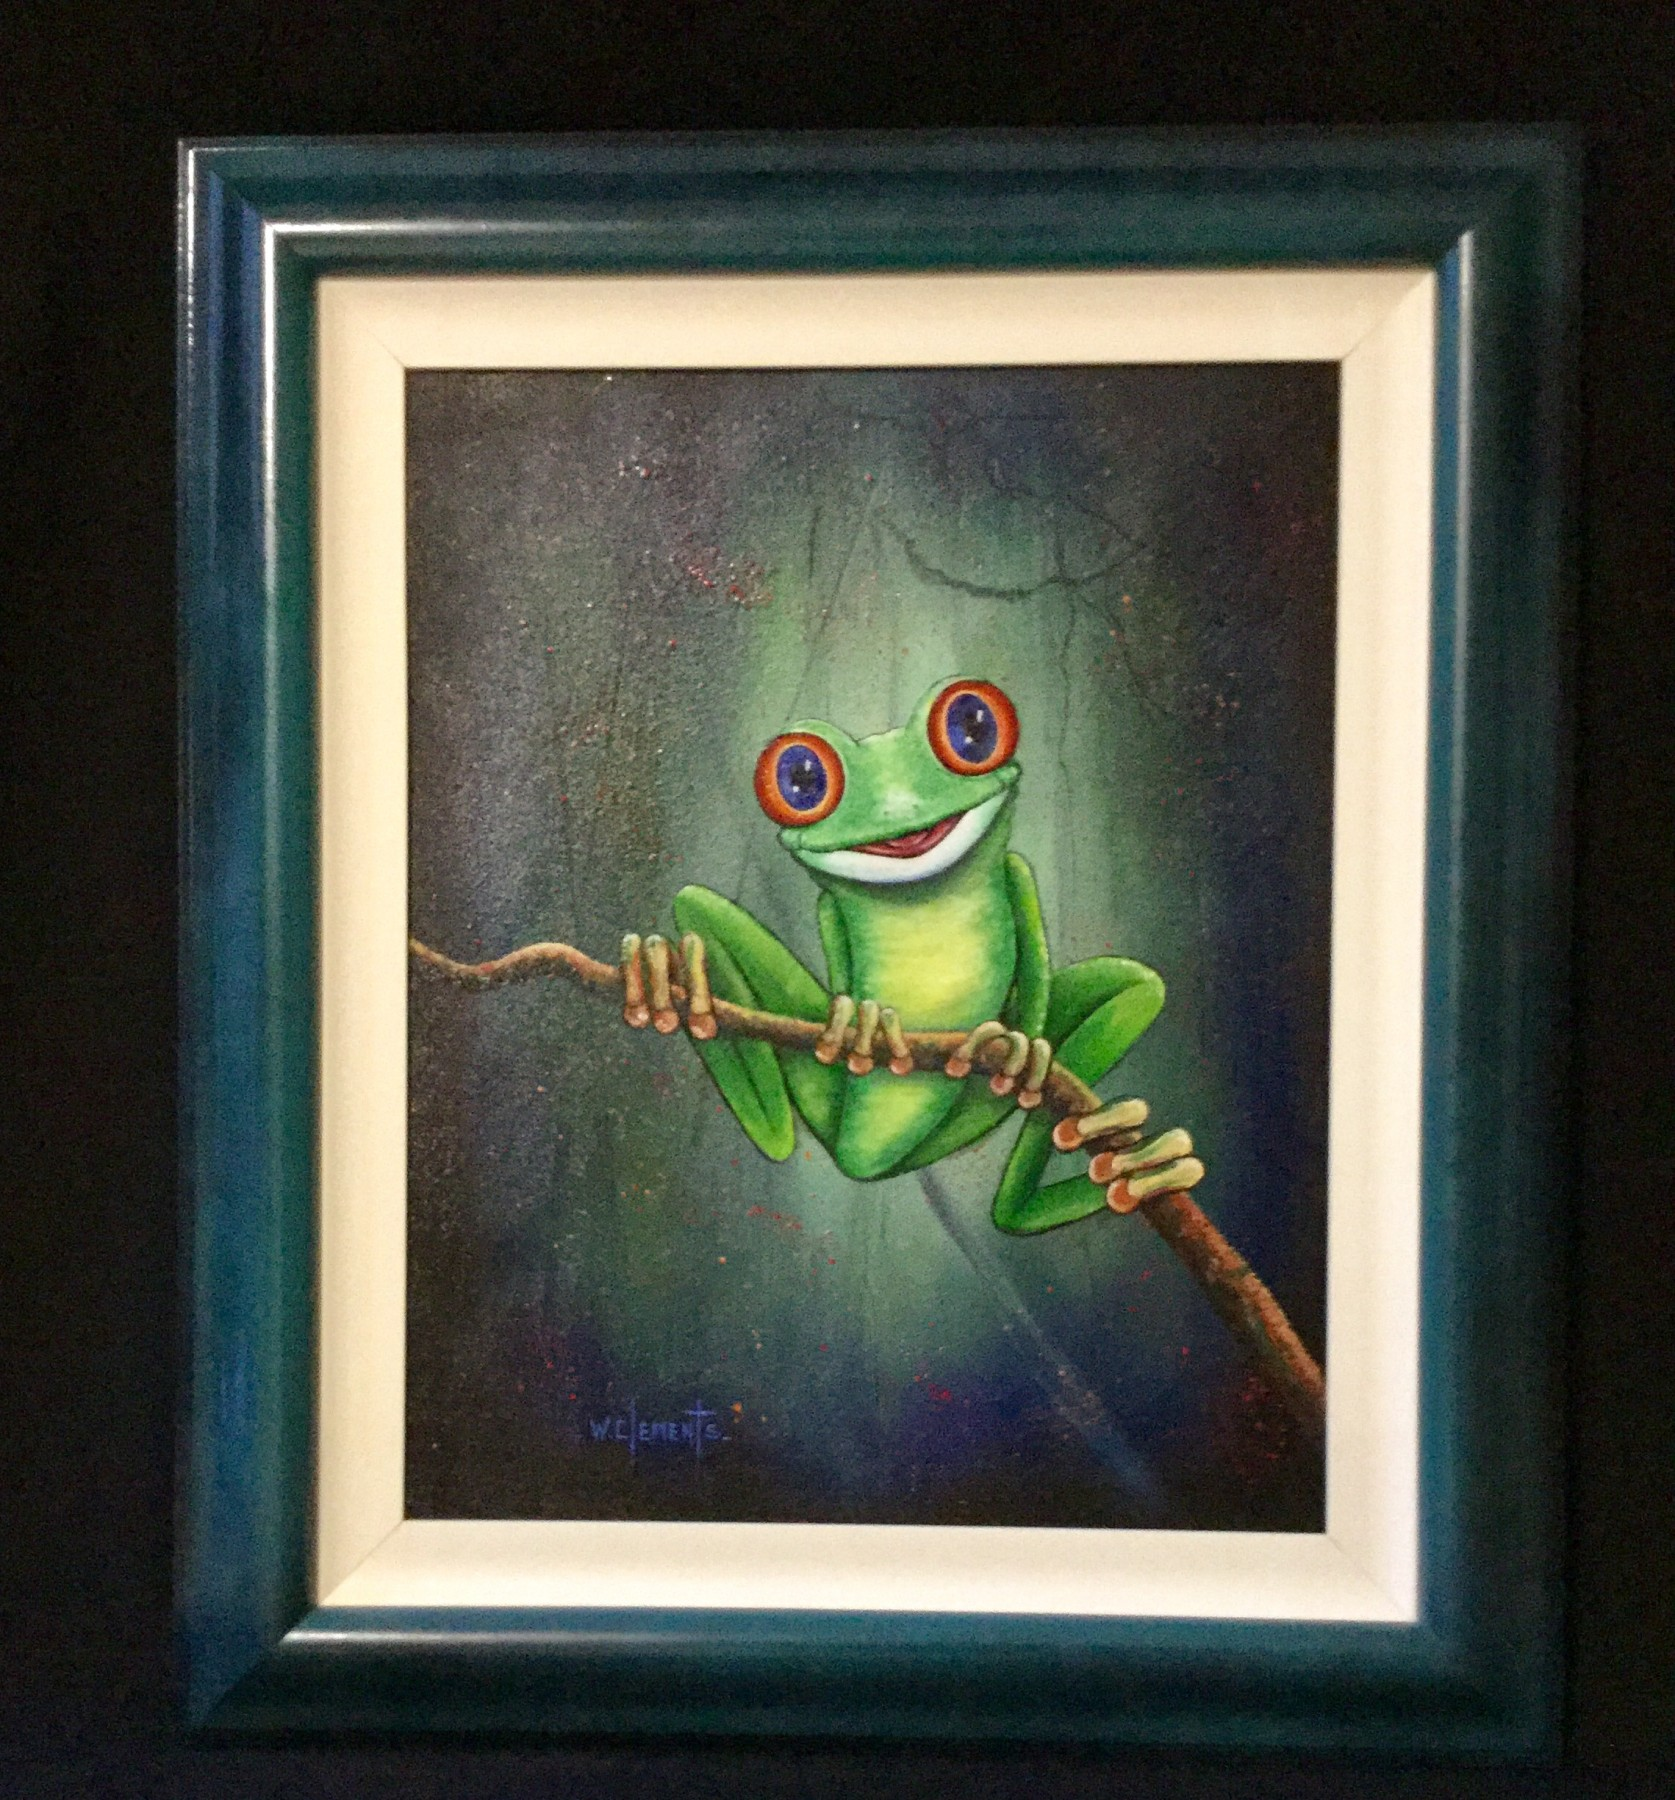 Commission oil painting of frog